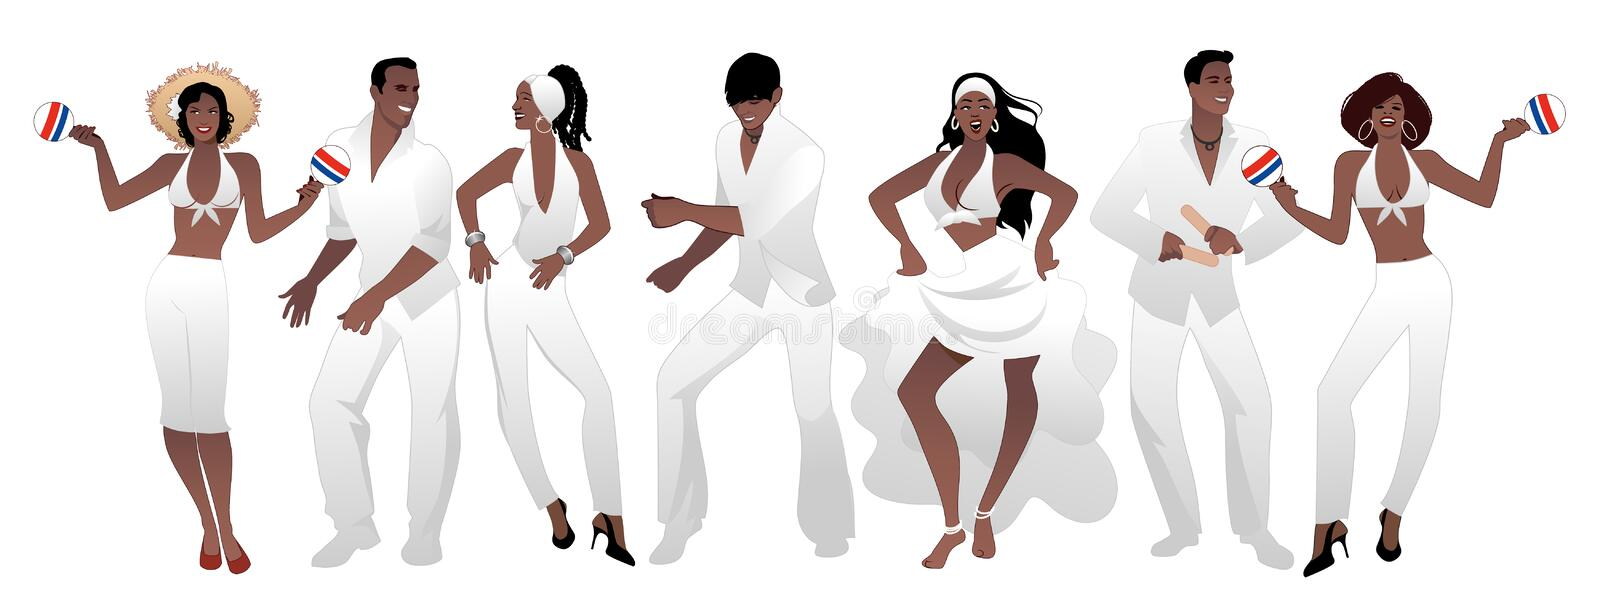 Salsa Party Time. Group of three men and four women dancing latin music. Two girls playing maracas and man playing the Claves. Group isolated on white vector illustration